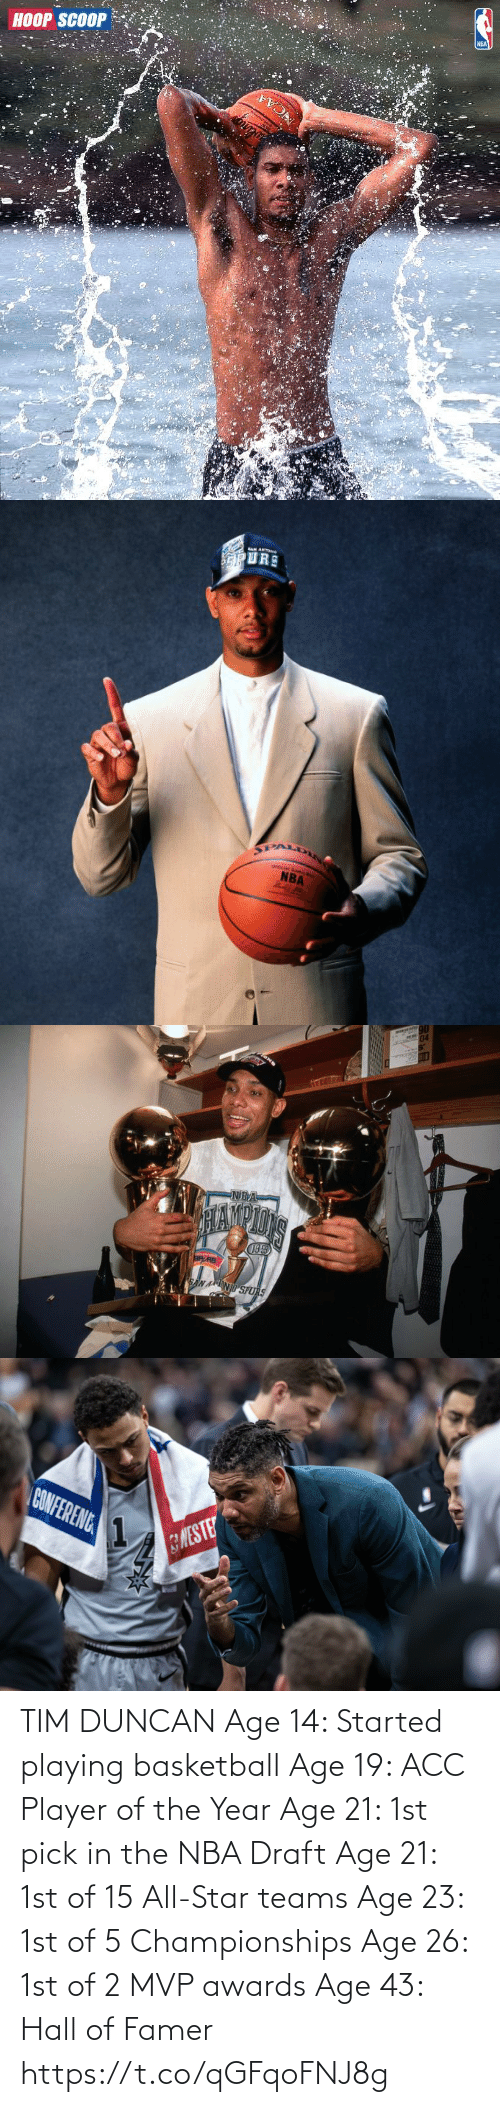 NBA: TIM DUNCAN  Age 14: Started playing basketball Age 19: ACC Player of the Year Age 21: 1st pick in the NBA Draft Age 21: 1st of 15 All-Star teams Age 23: 1st of 5 Championships Age 26: 1st of 2 MVP awards Age 43: Hall of Famer https://t.co/qGFqoFNJ8g